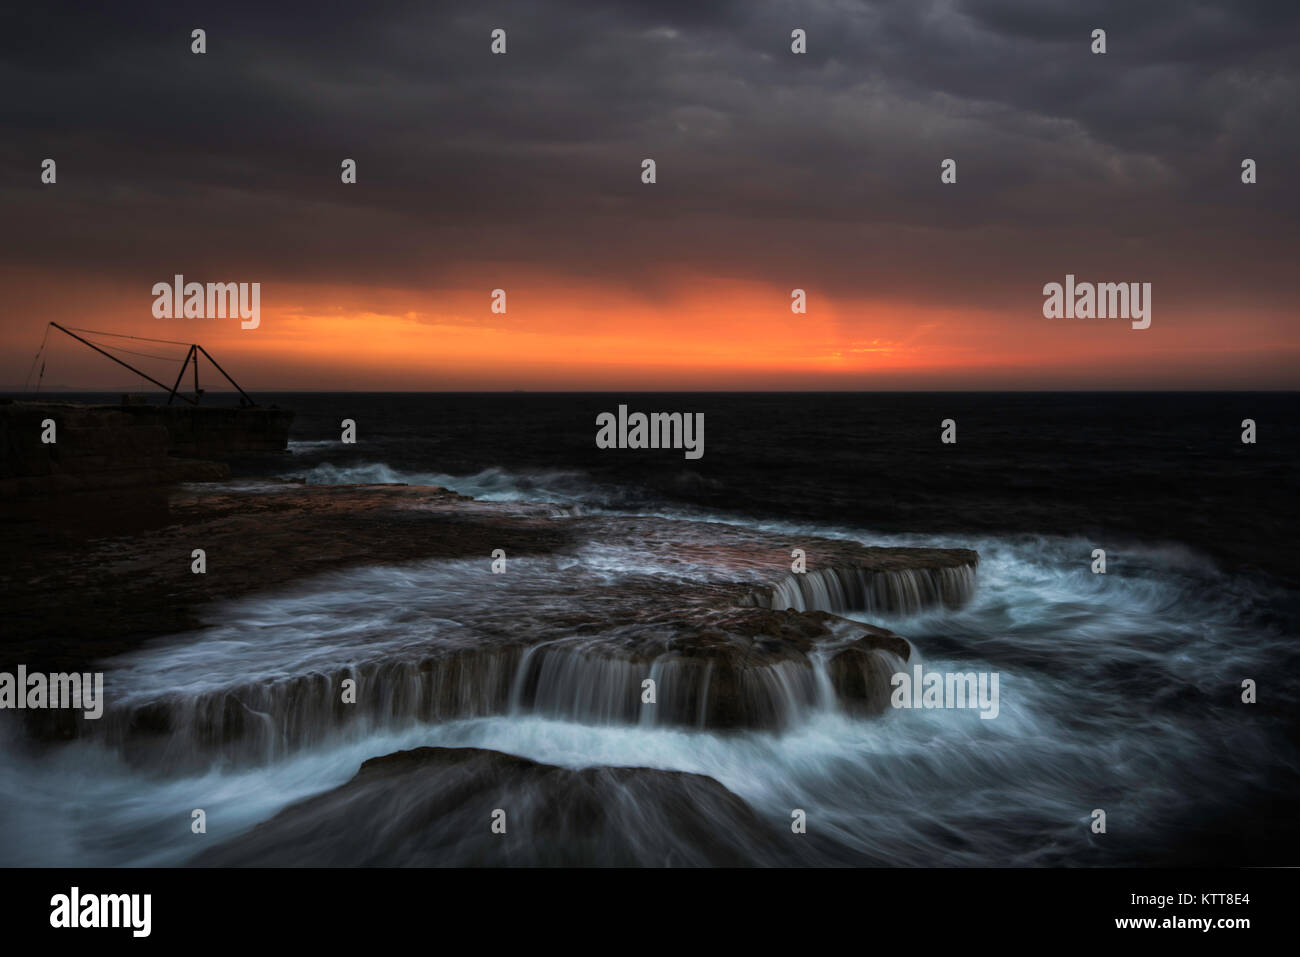 Red Crane and Stormy Sea Nightscape - Stock Image